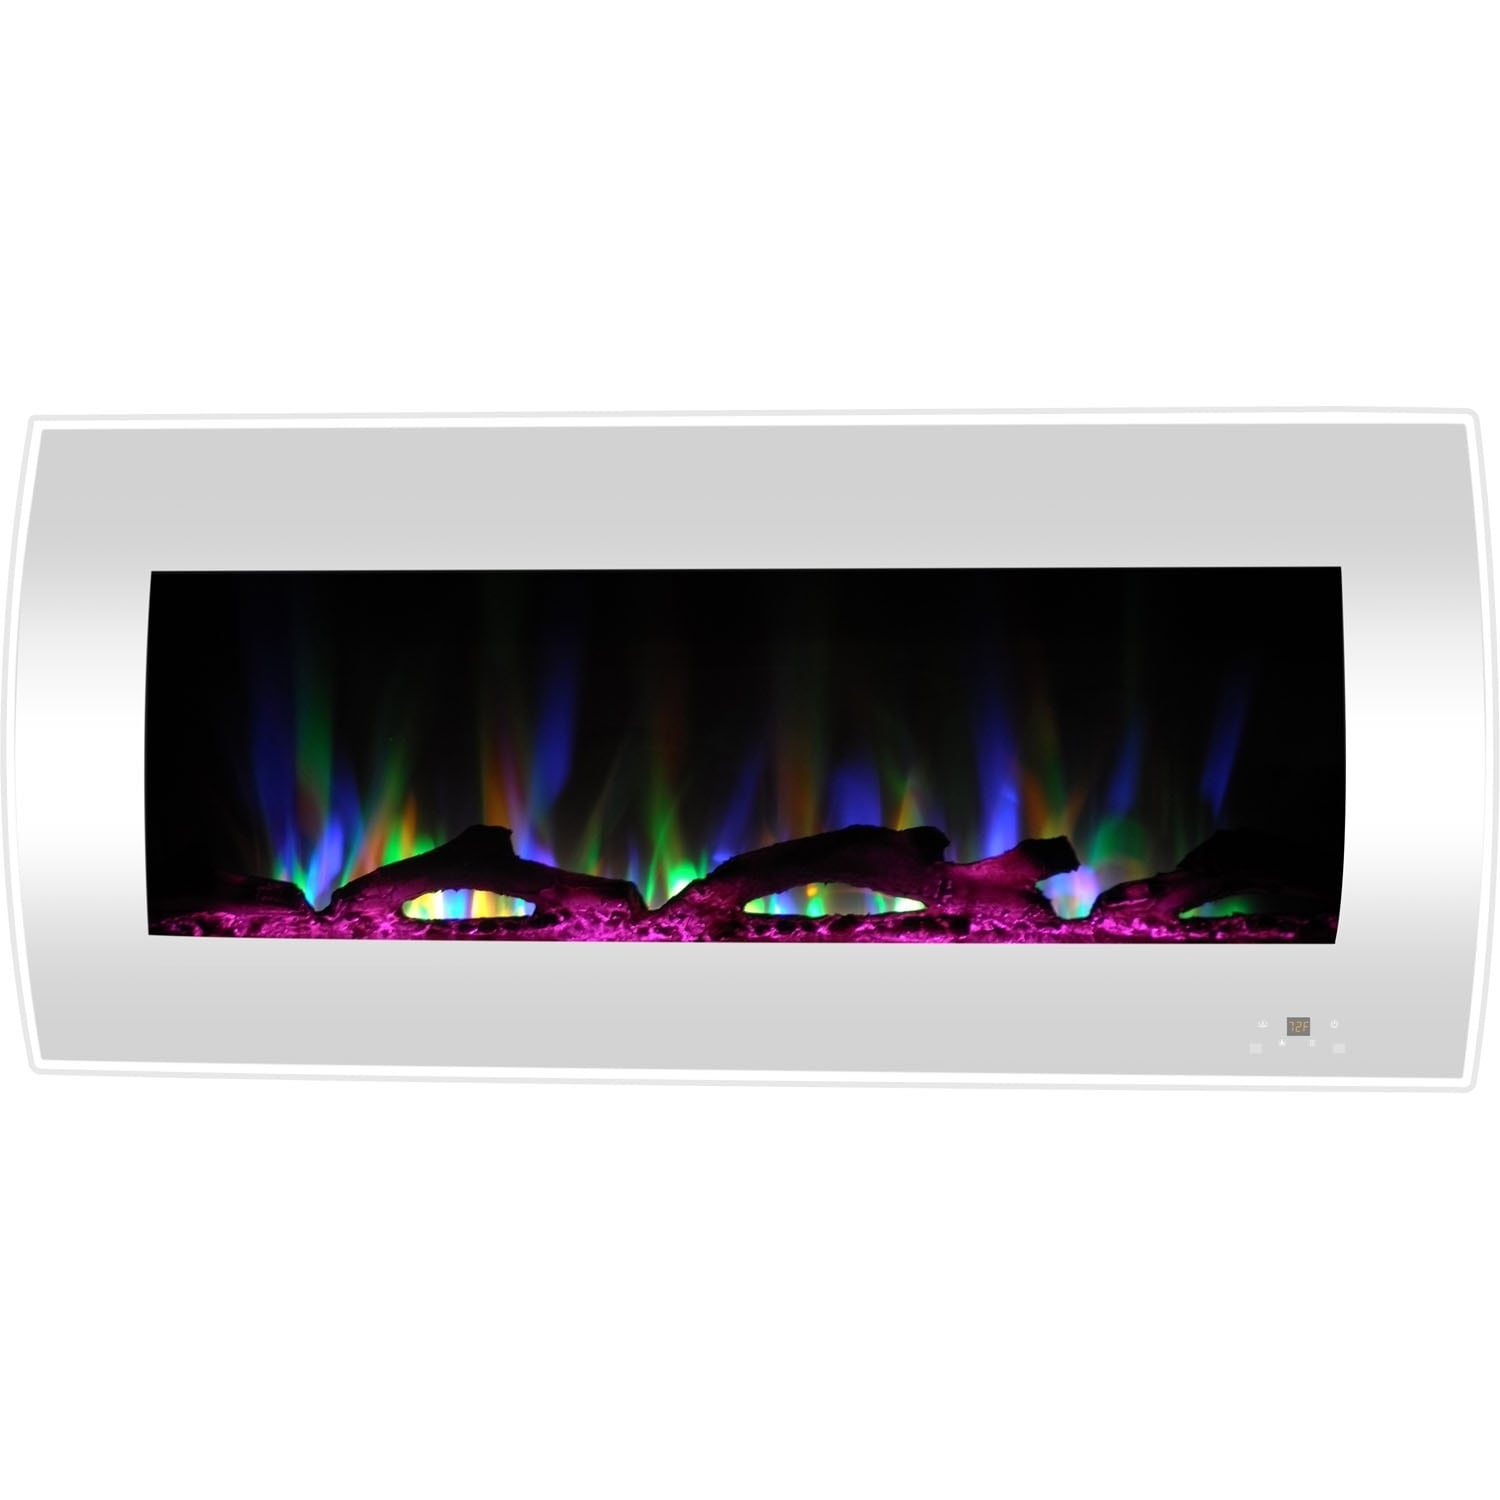 Curved Electric Fireplace Cambridge 42 In Curved Wall Mount Electric Fireplace Heater In White